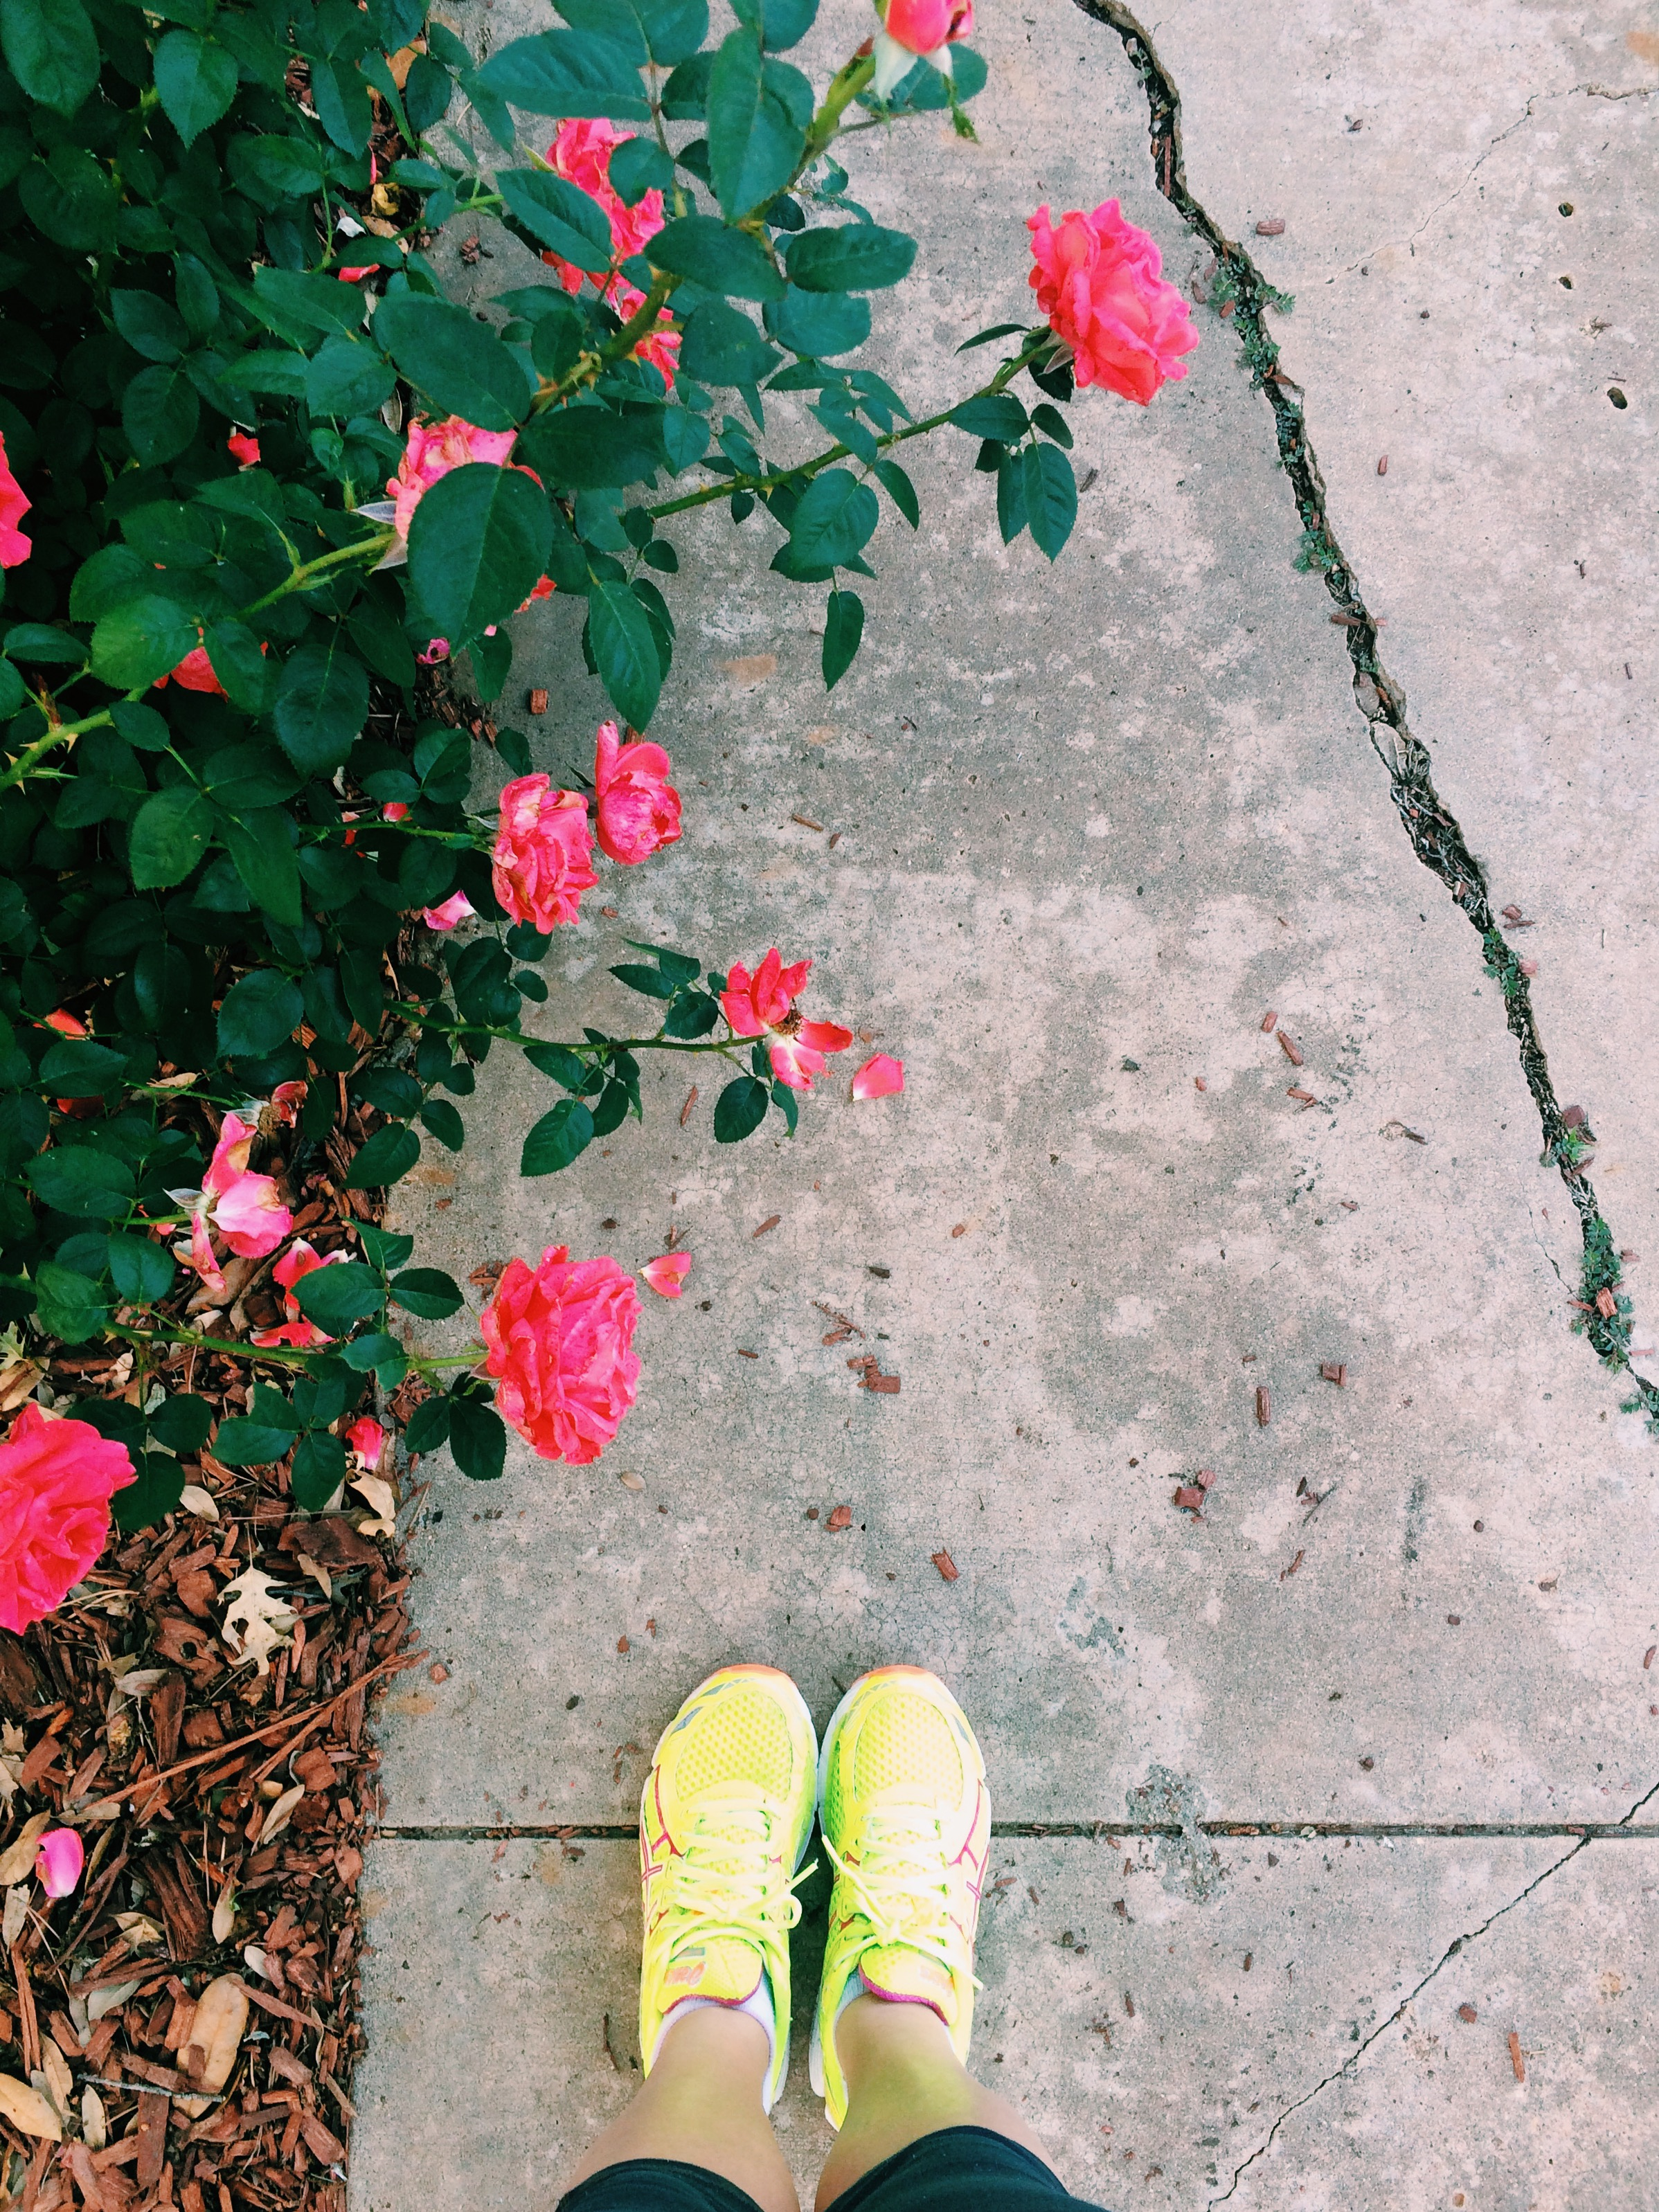 neon running shoes and flowers